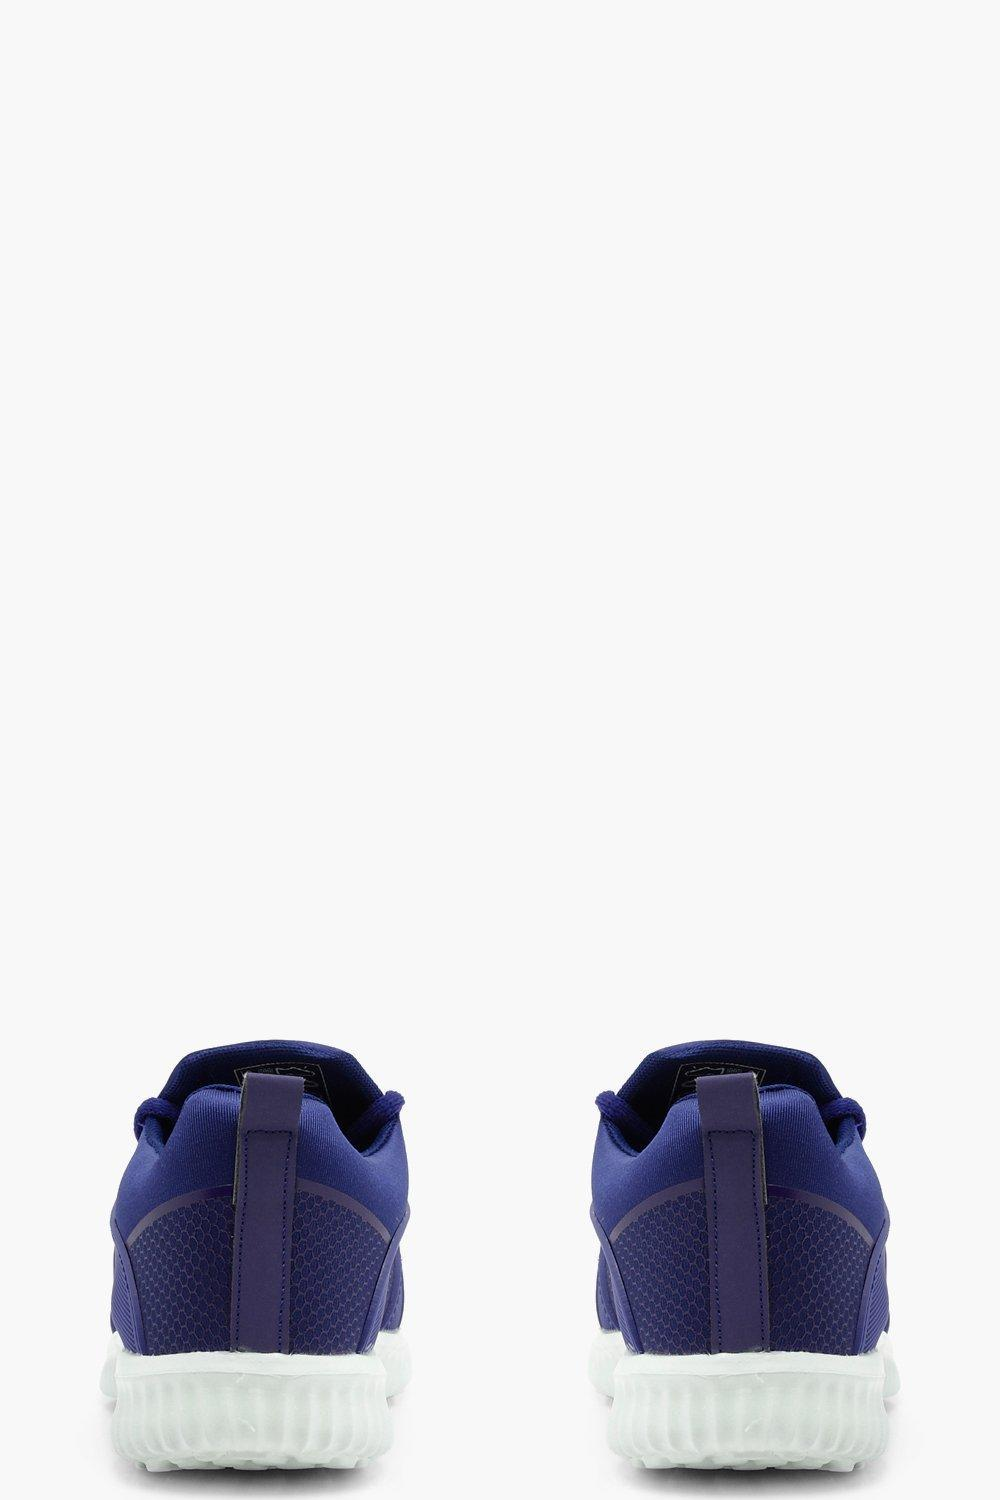 Boohoo Lacey Lace Up Sports Trainer in Navy (Blue)